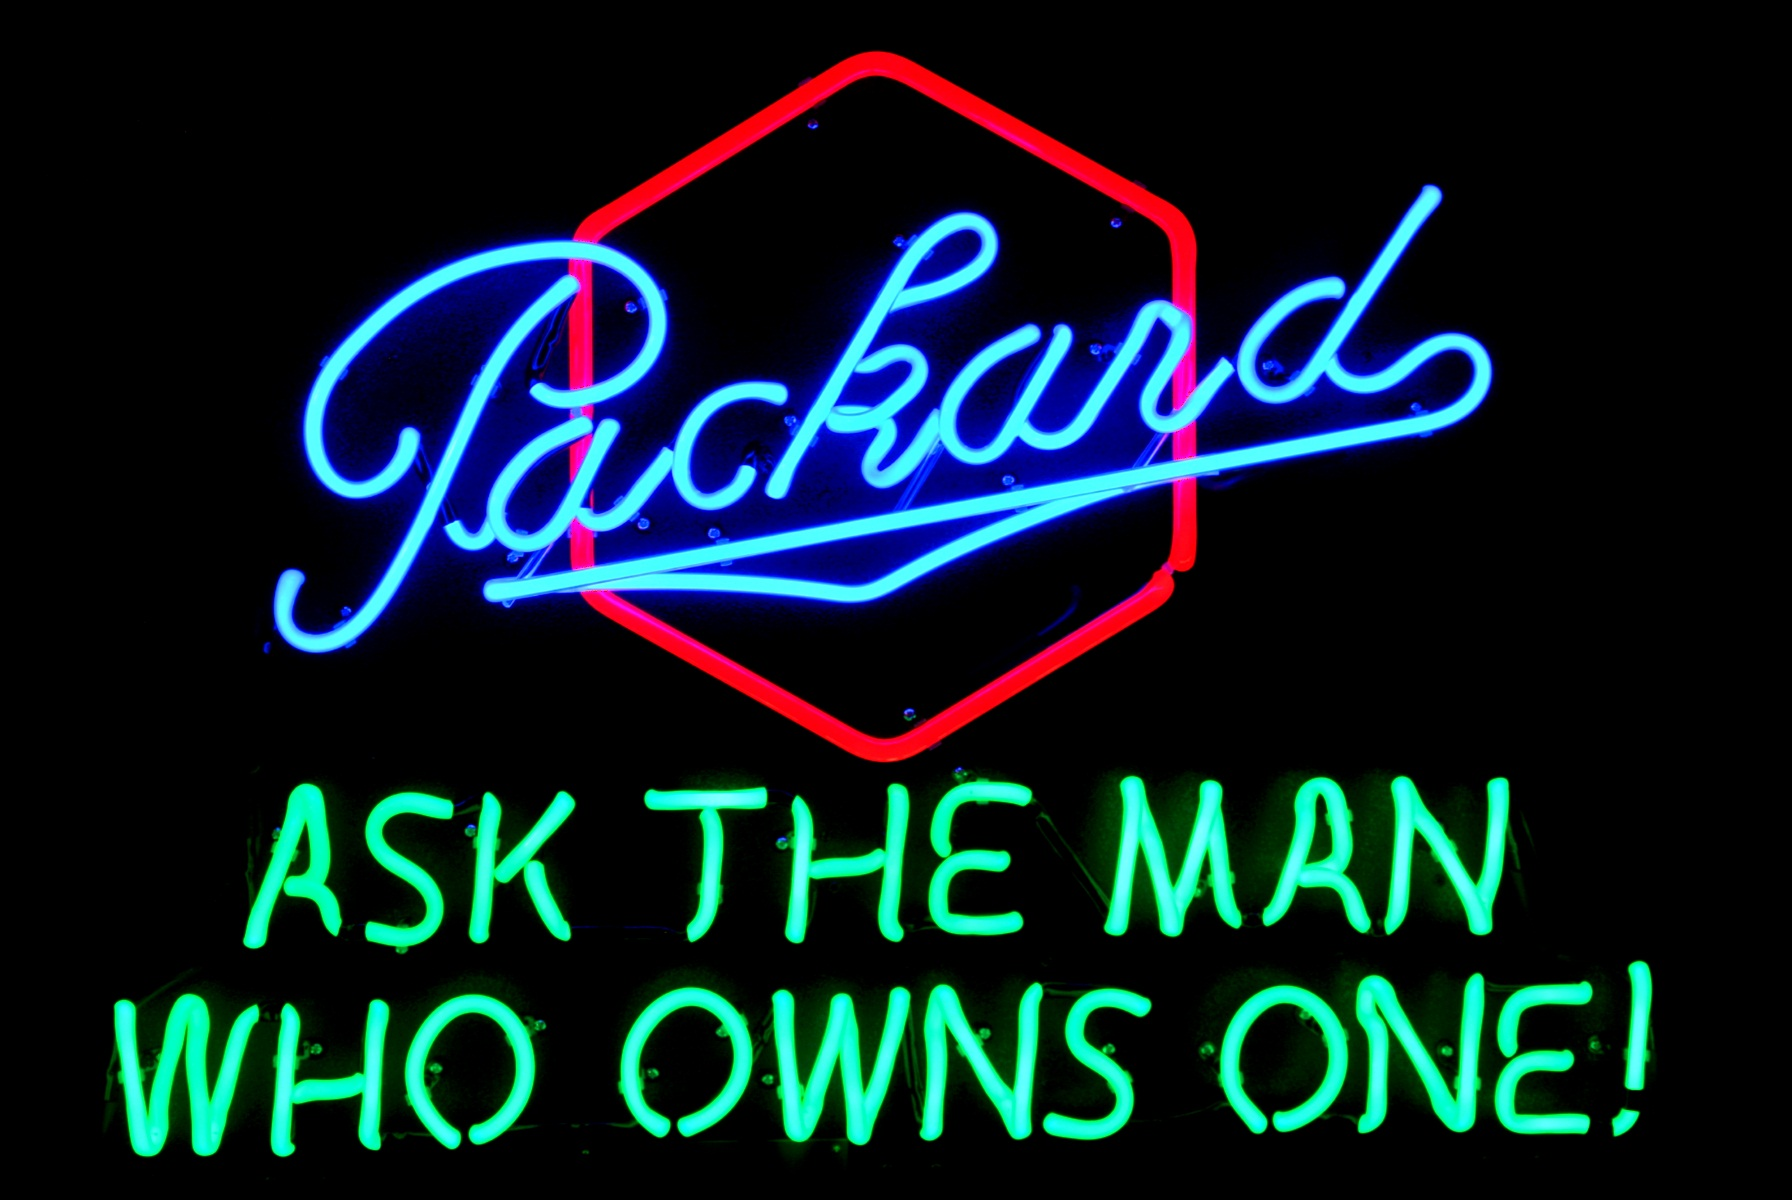 Packard ASK THE MAN WHO OWNS ONE! Neon Sign by John Barton - BartonNeonMagic.com